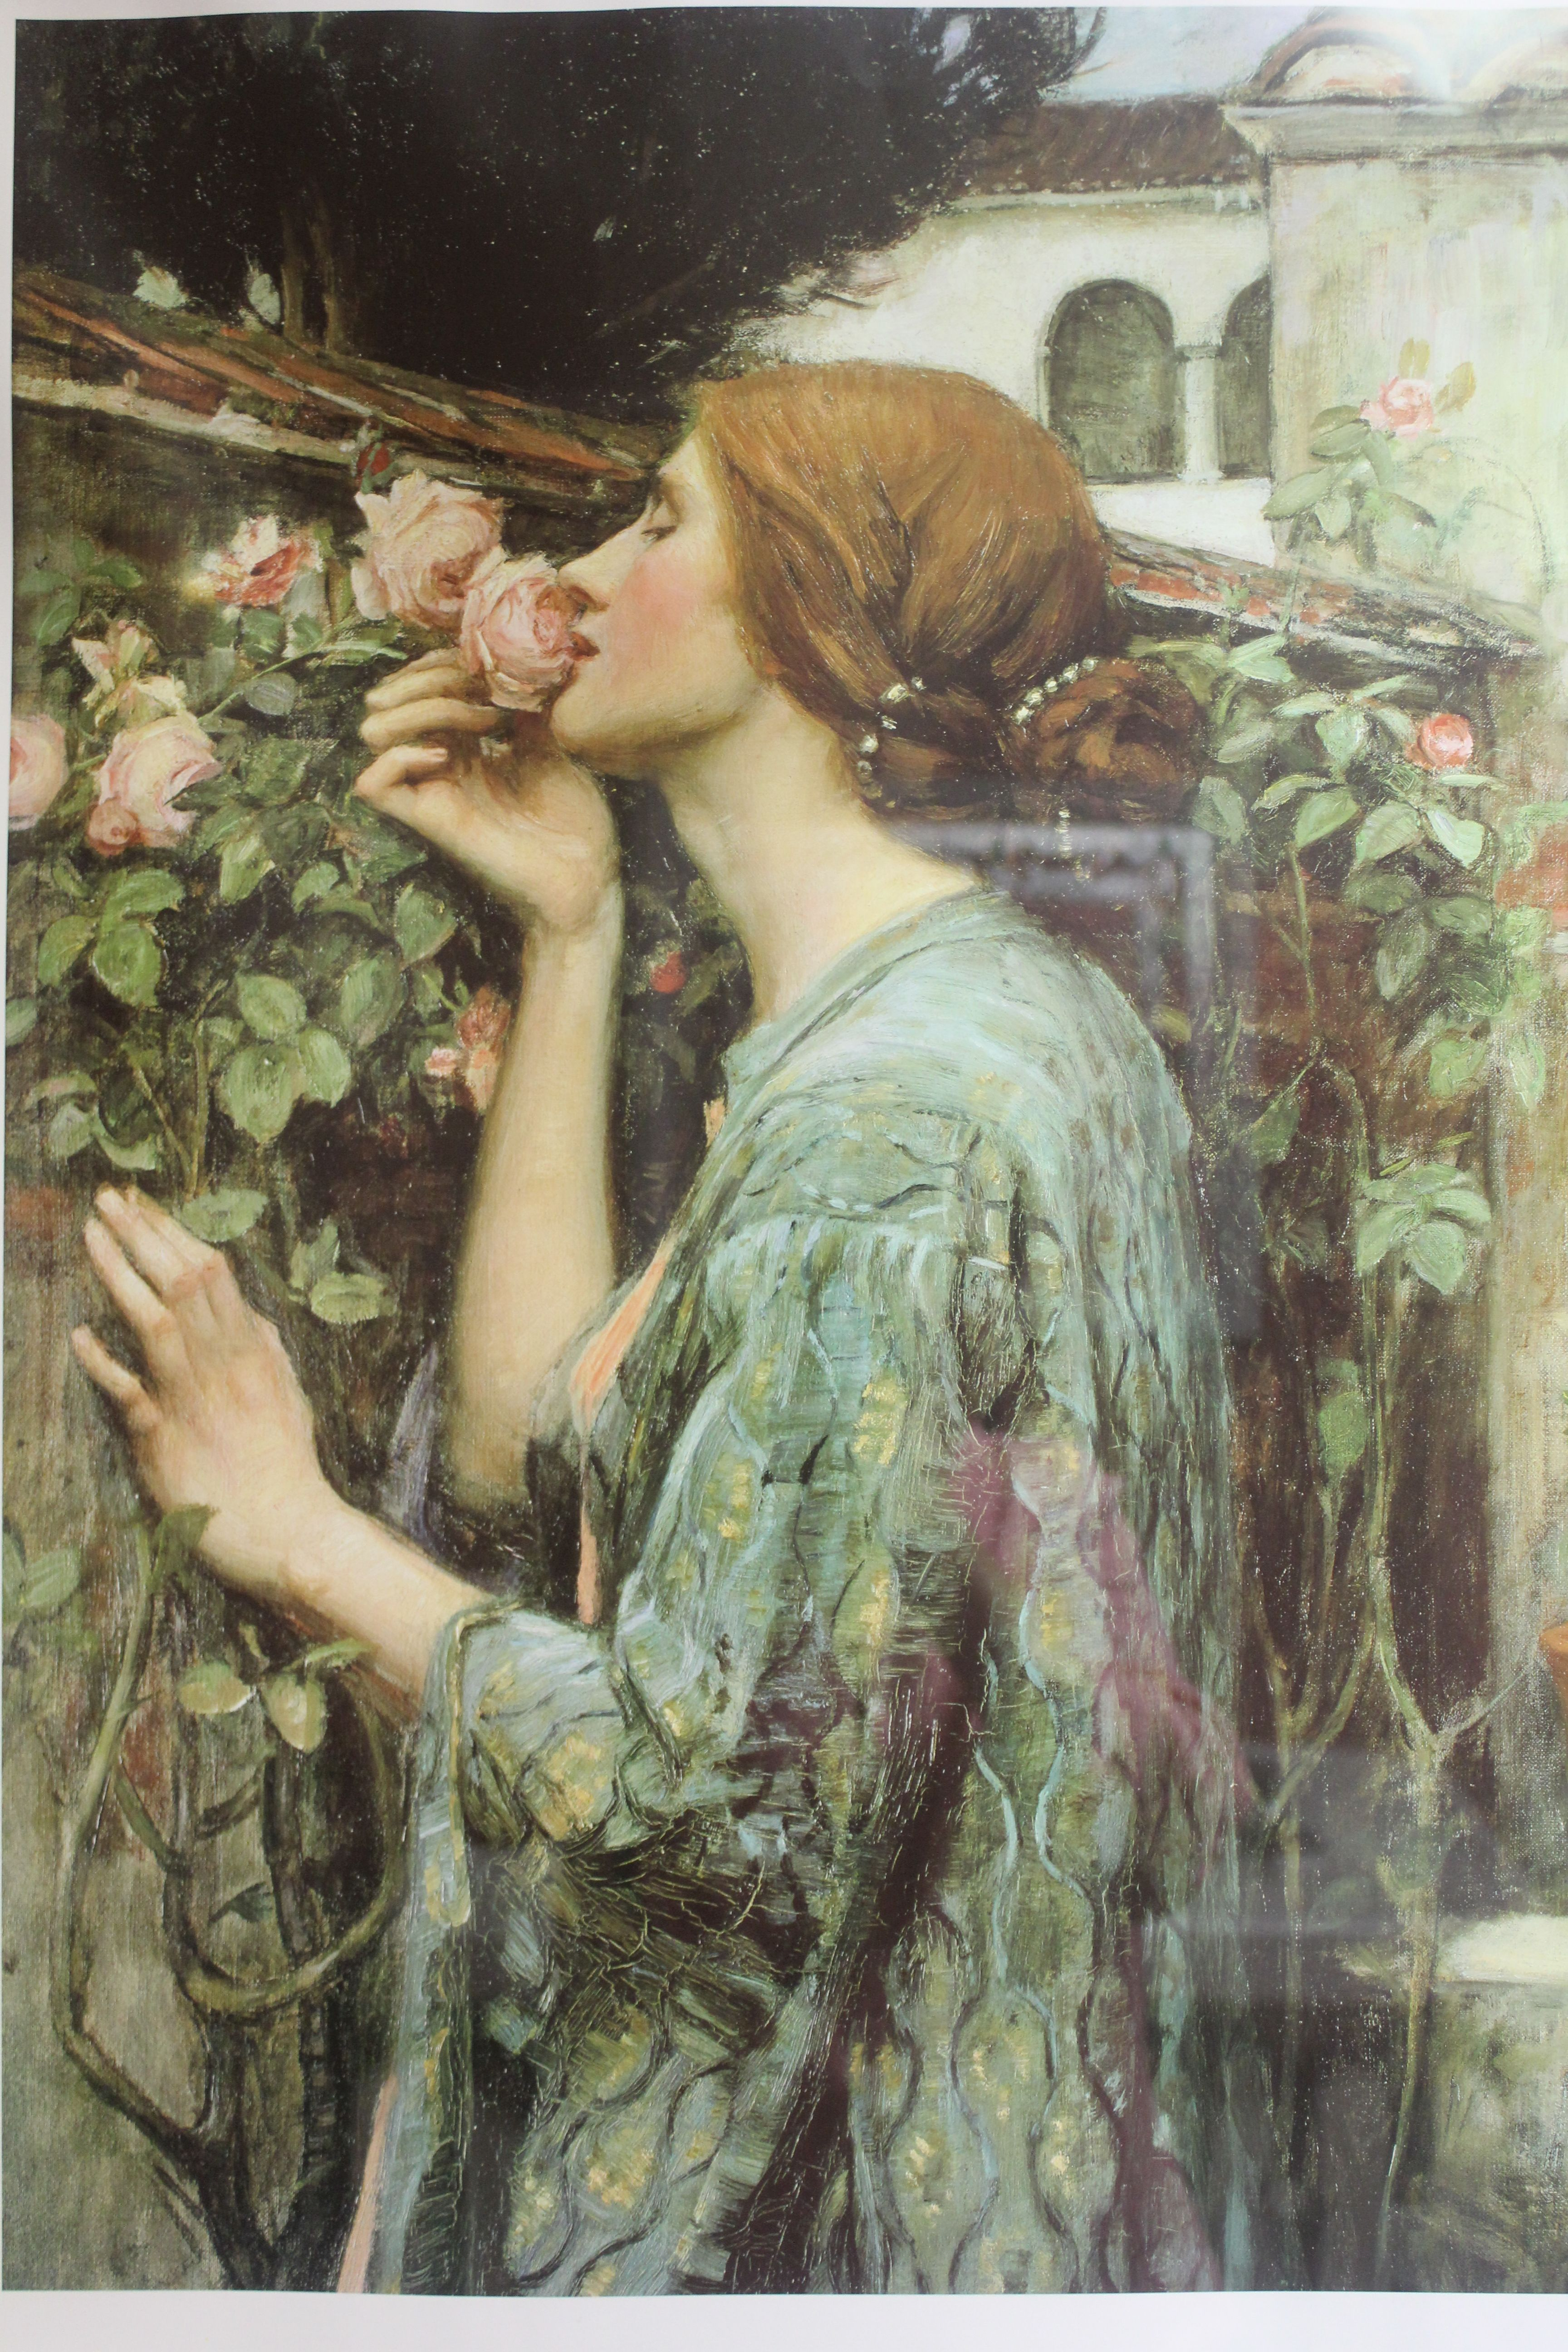 John william waterhouse clipart free library A beautiful painting by John William Waterhouse. | Art - all kinds ... free library